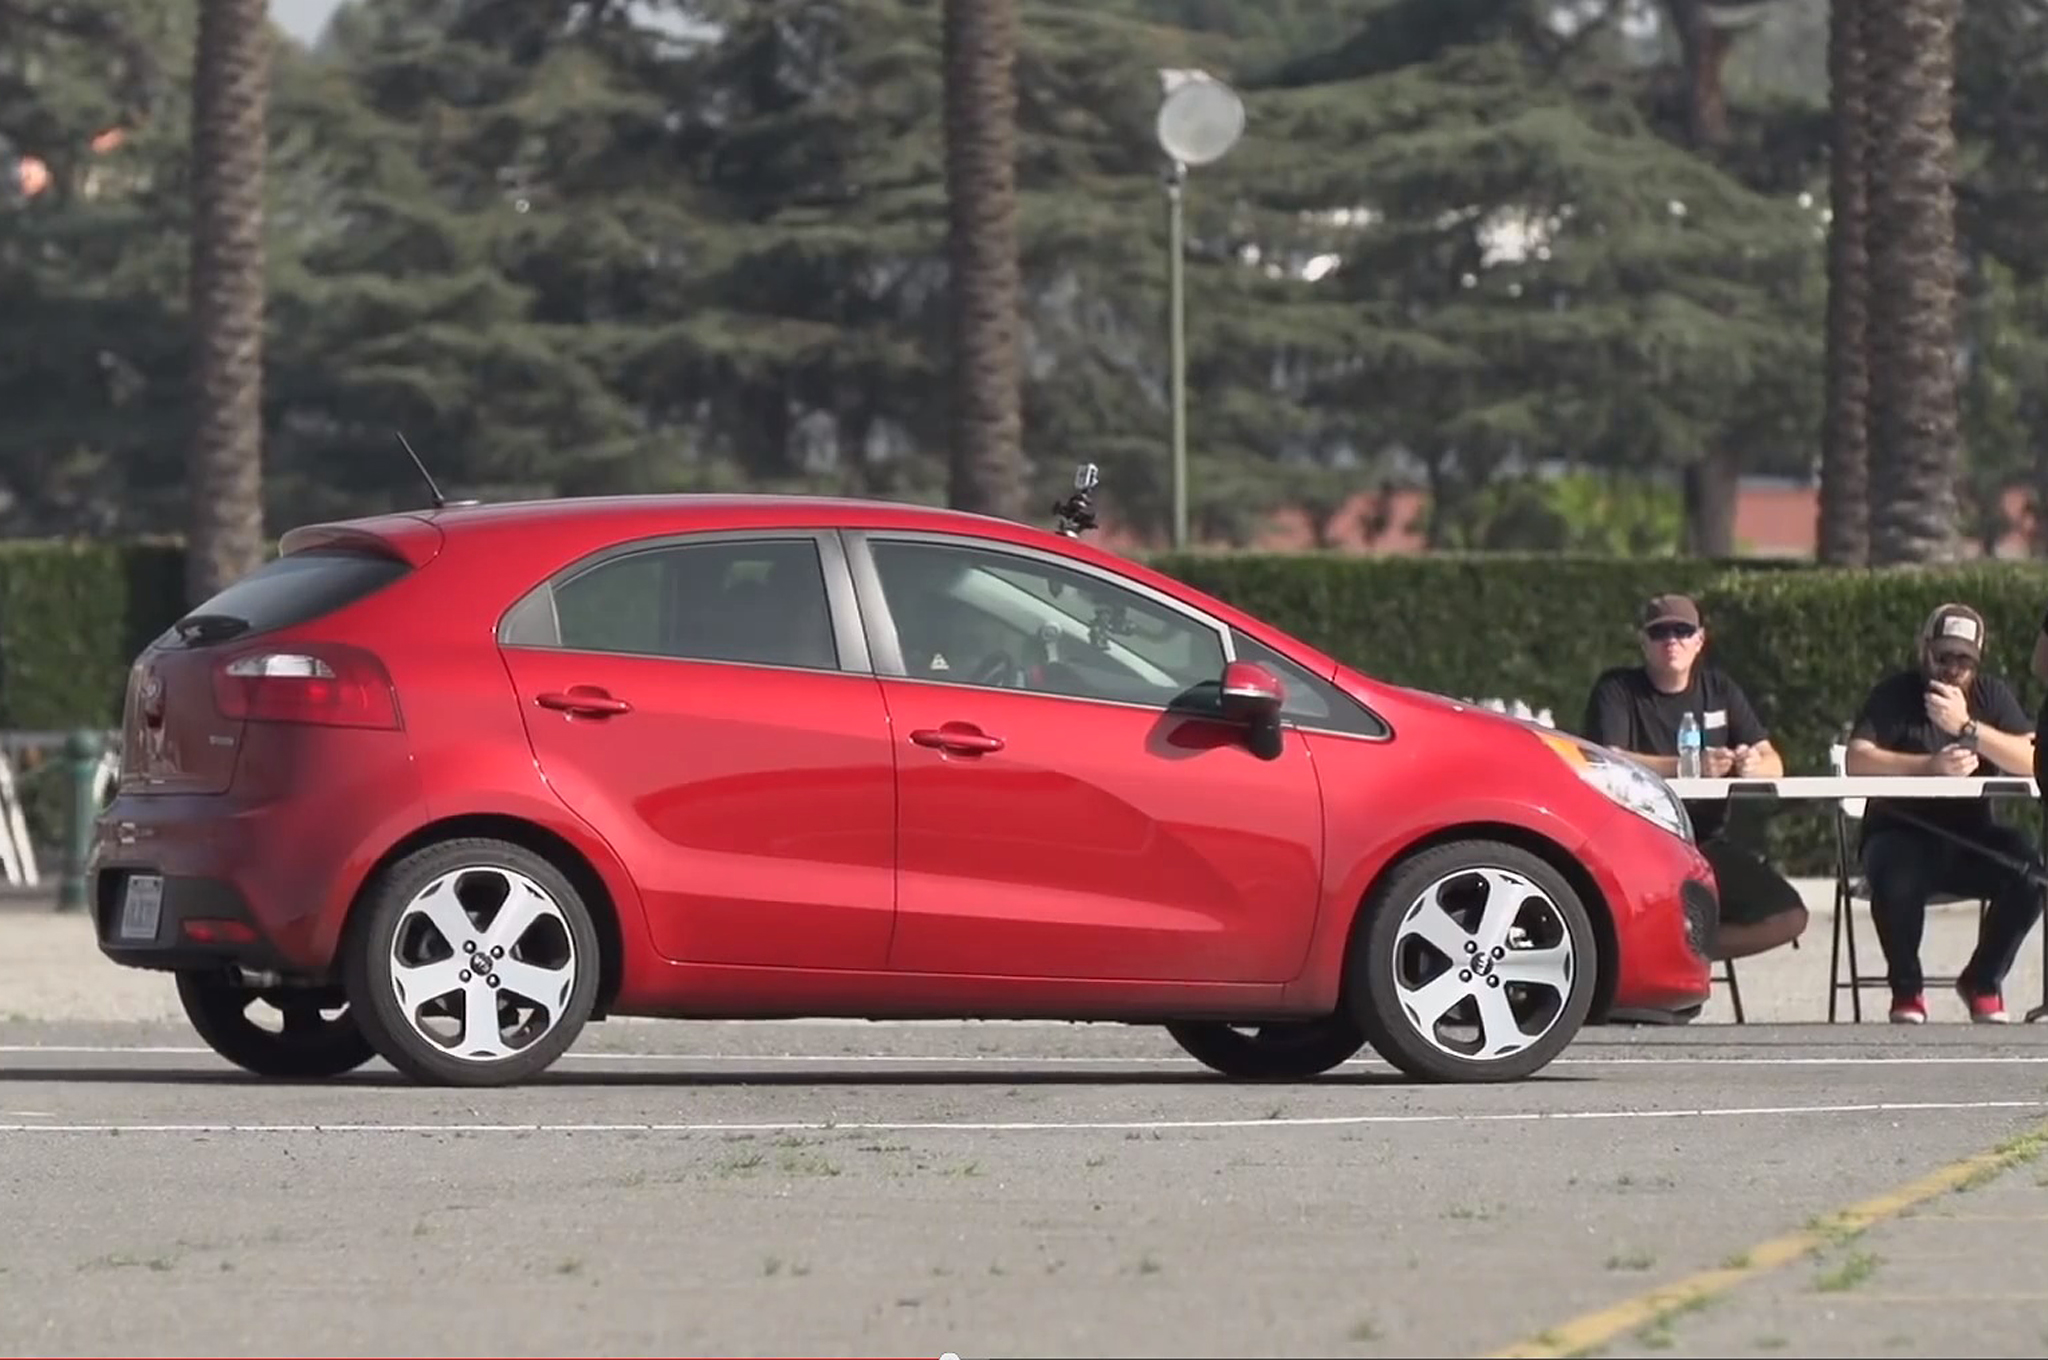 Exceptional 2013 Kia Rio SX Long Term Update 6. U201c